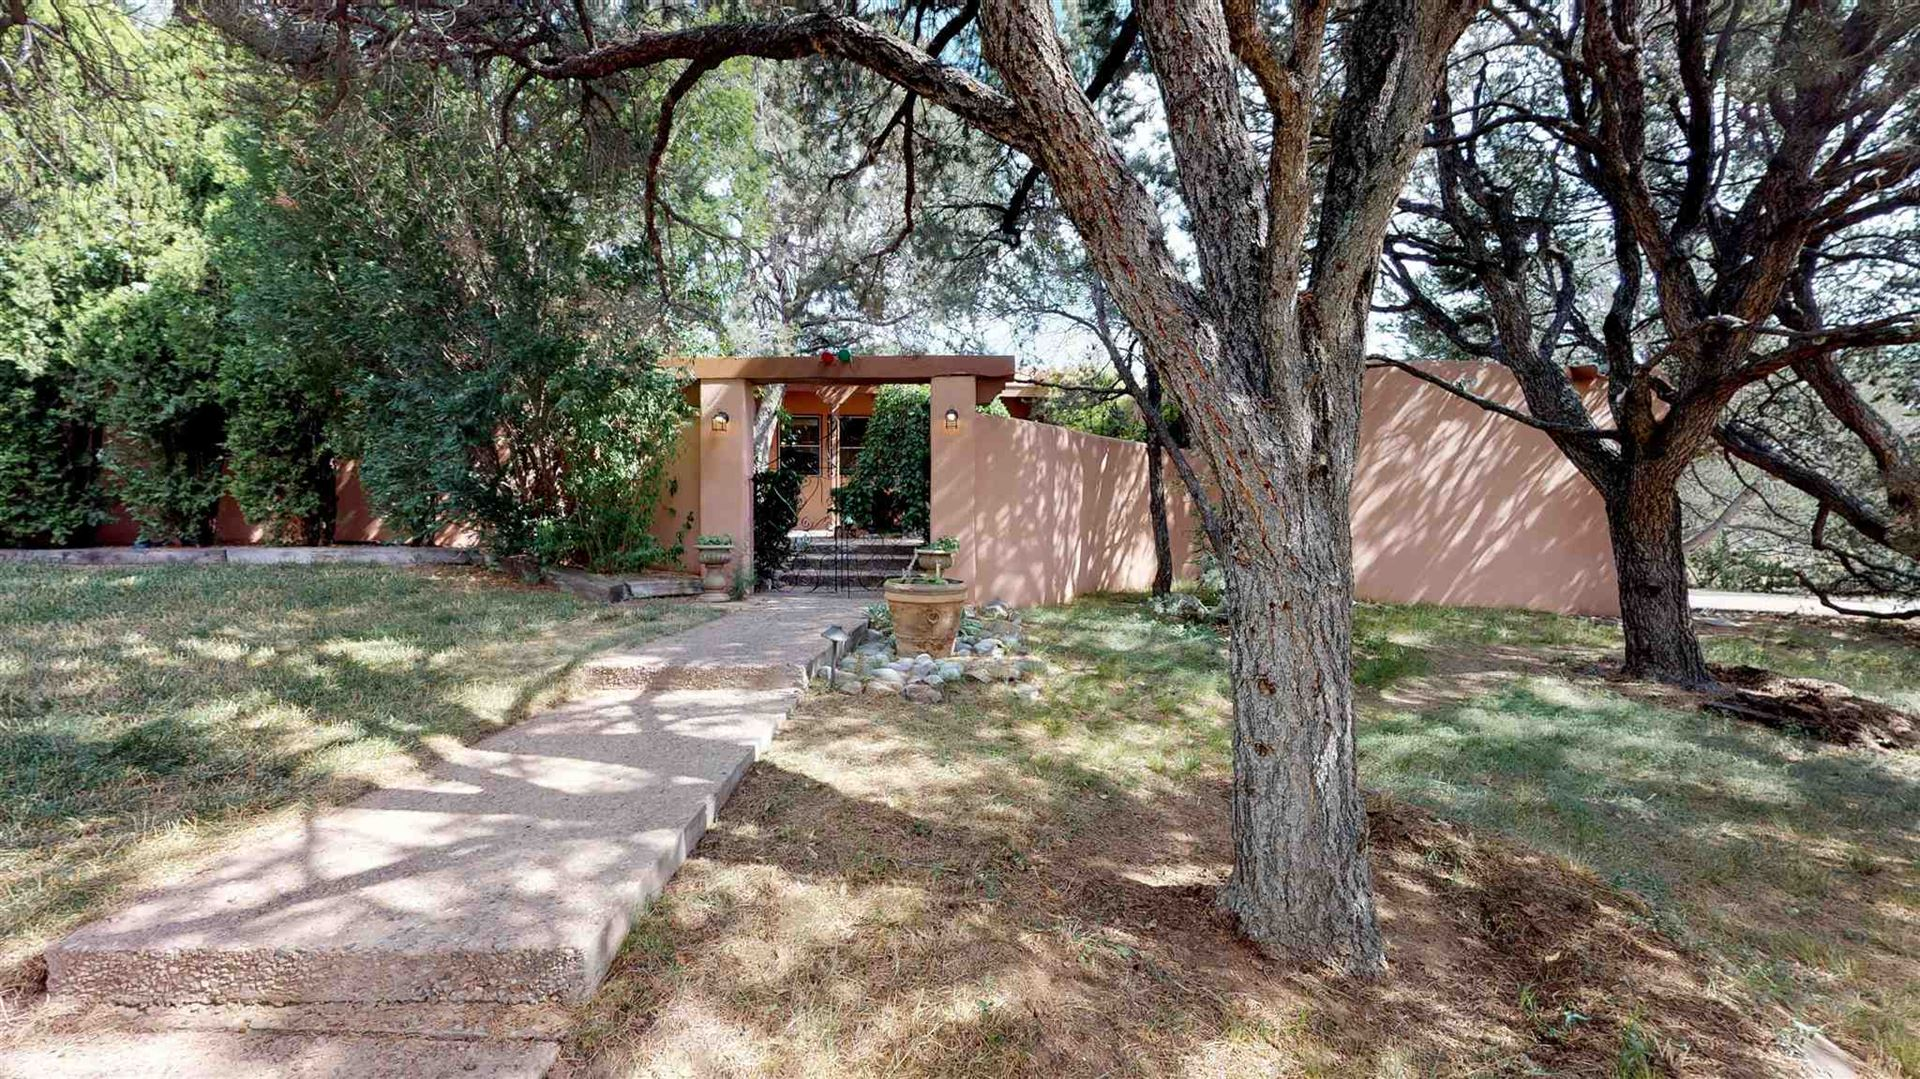 Photo for 24 General Sage, Santa Fe, NM 87505 (MLS # 201904159)